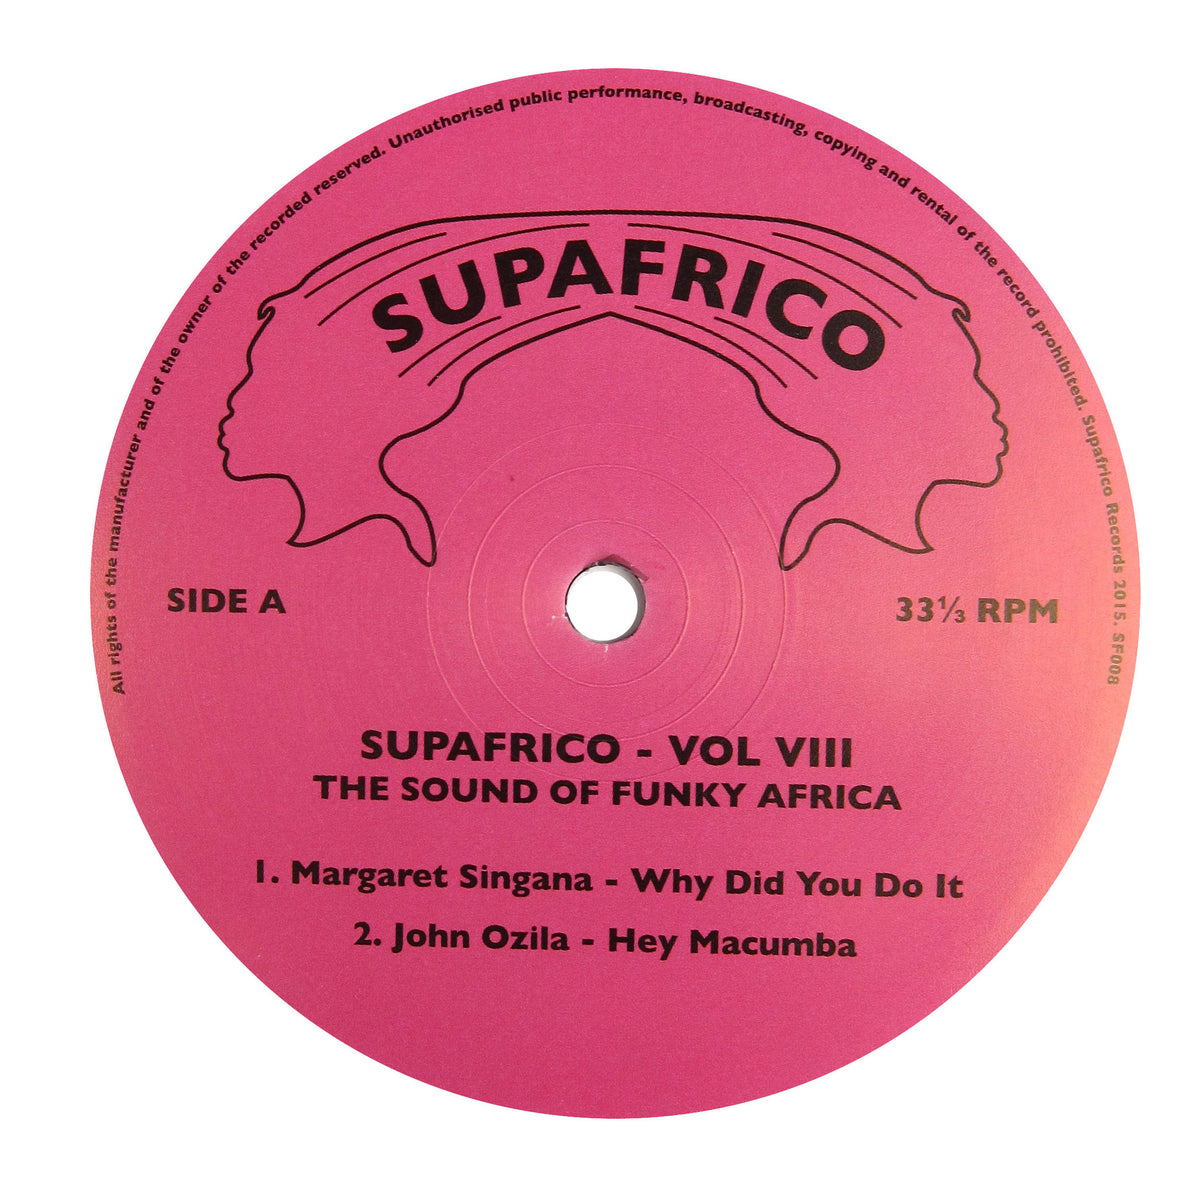 Supafrico: Vol VIII - The Sound Of Funky Africa (John Ozila) Vinyl 12""